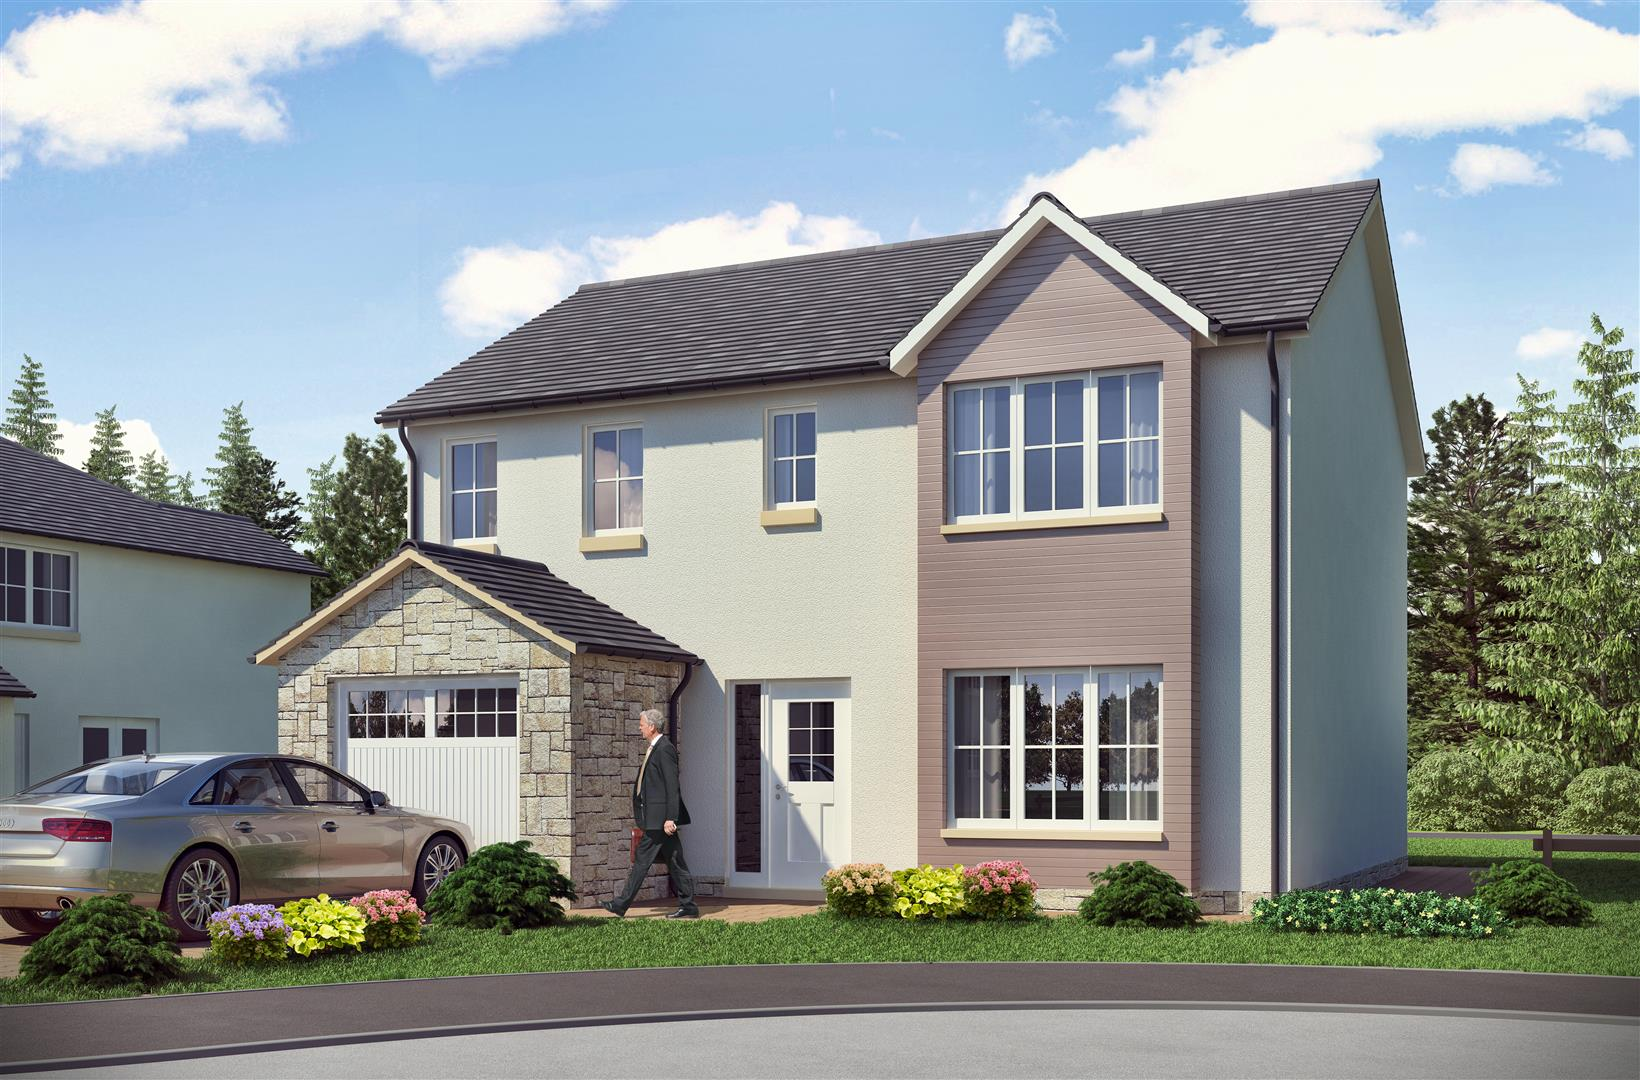 Plot 15g Craigtoun Levenfields